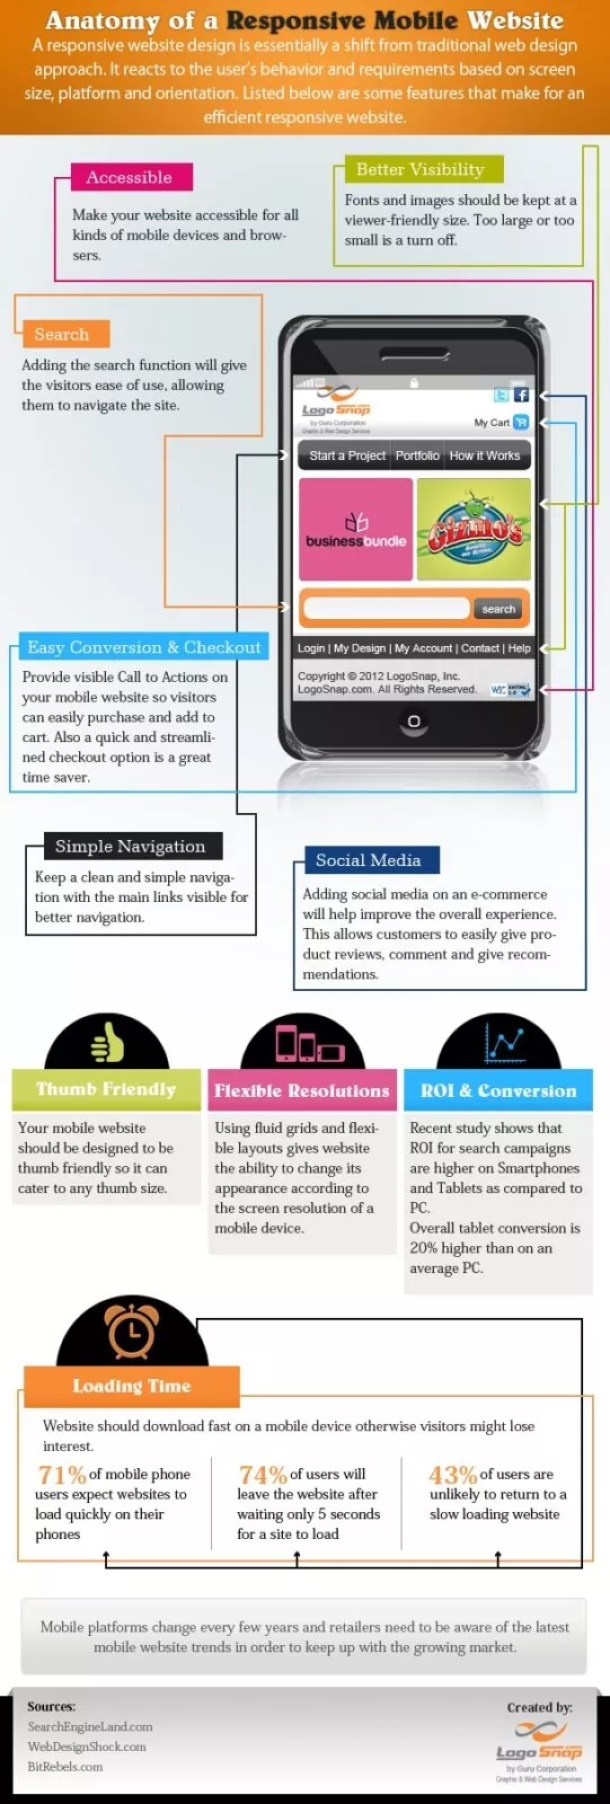 responsive website infographic - Anatomy of a Mobile Website Design